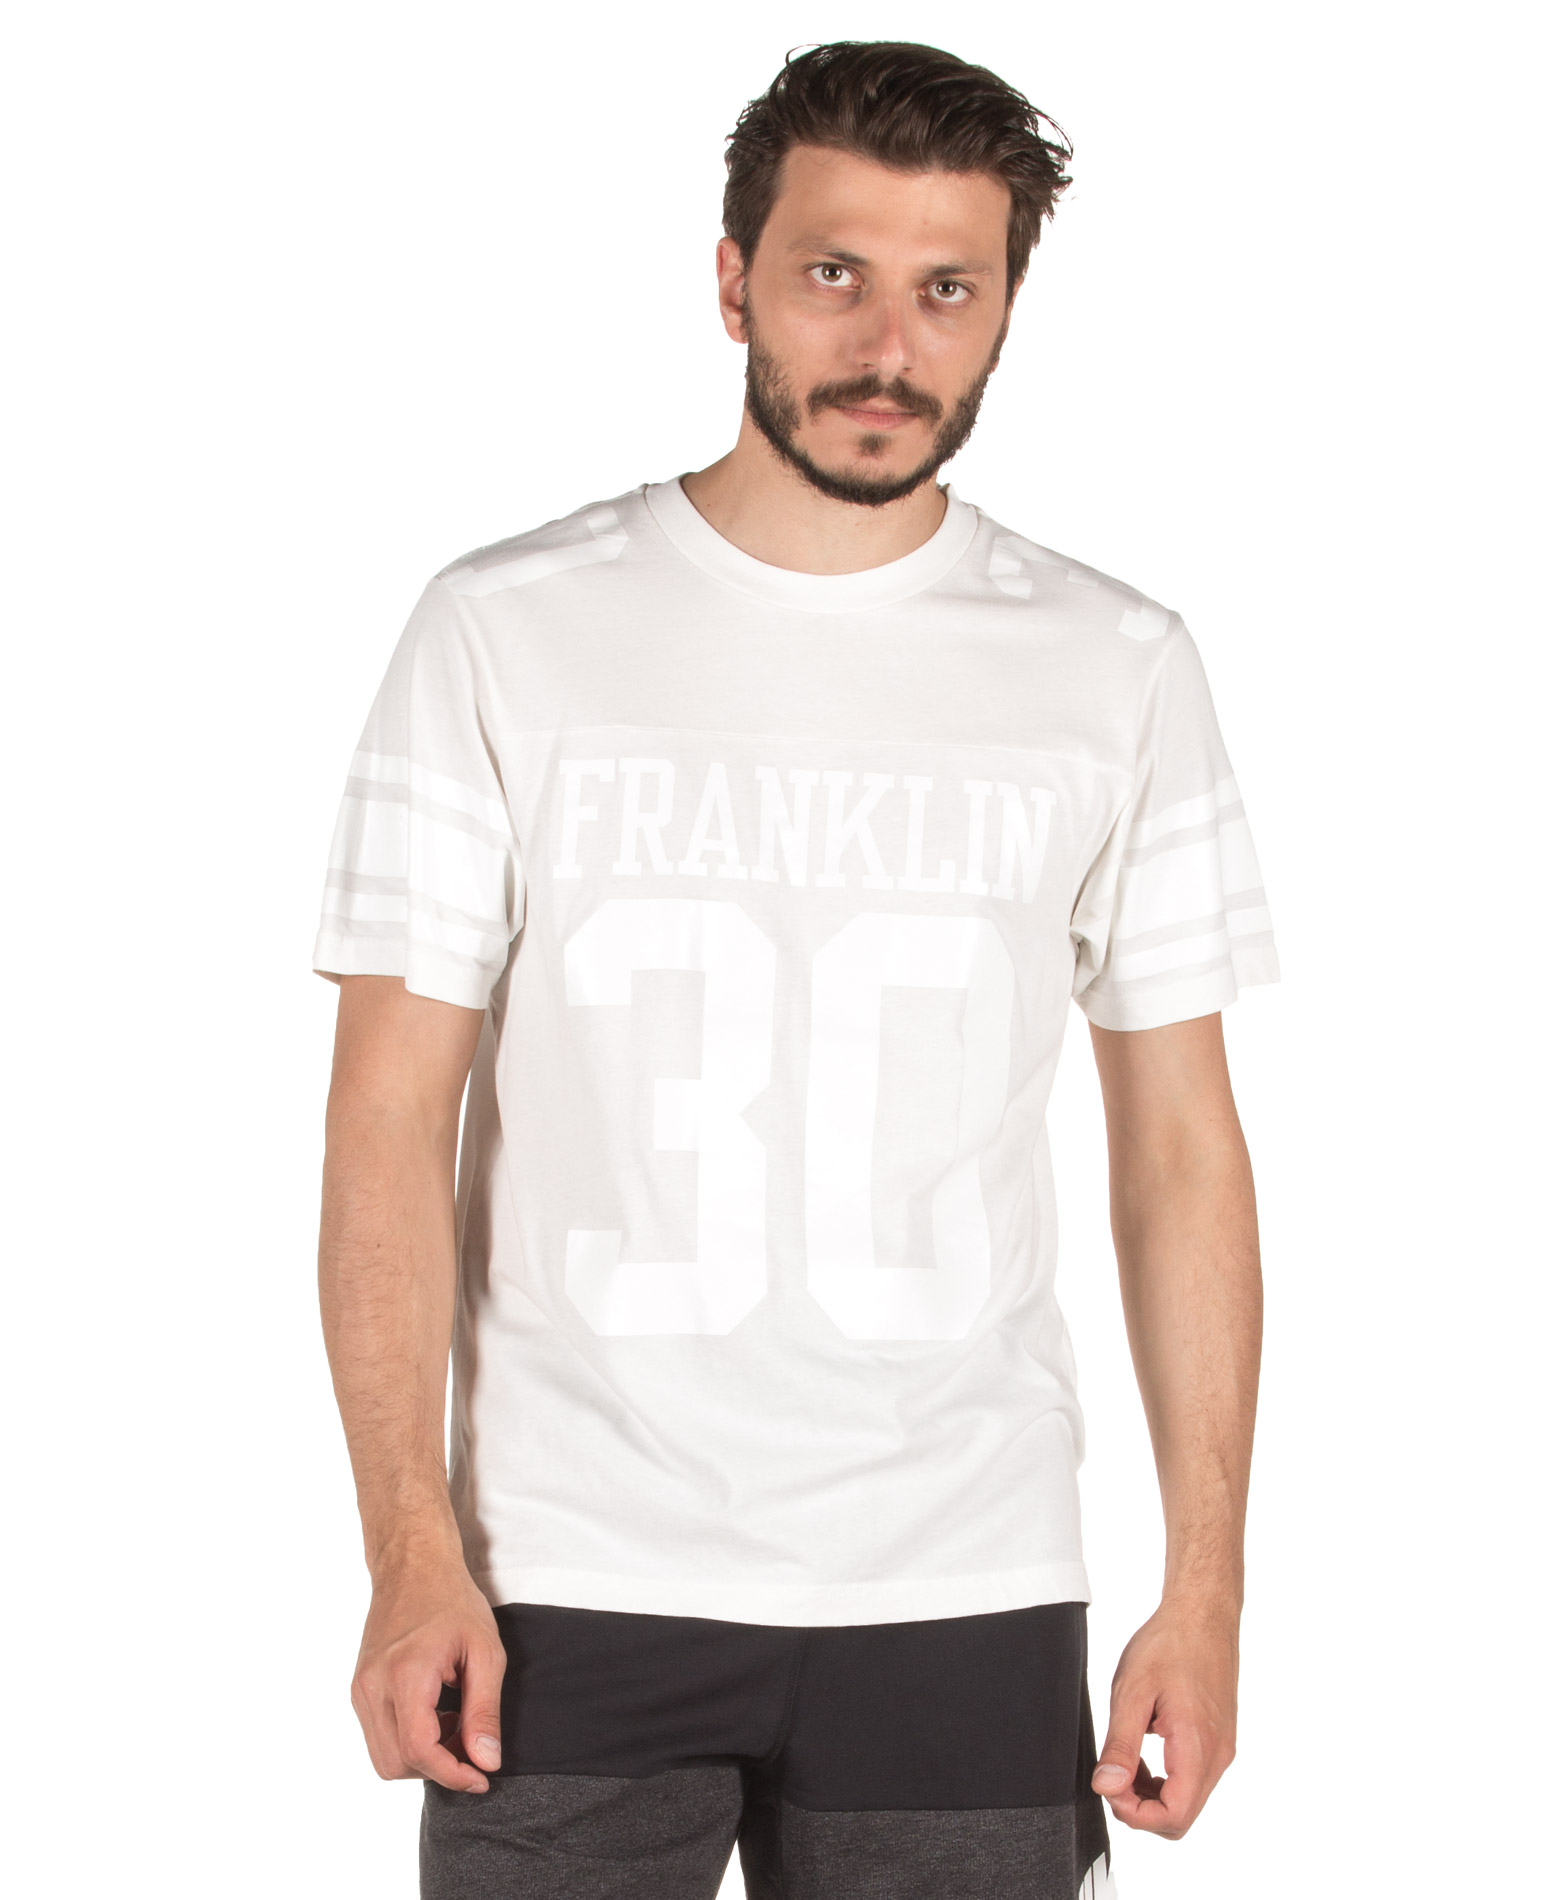 ΕΝΔΥΜΑΤΑ TShirt FRANKLIN MARSHALL TSMF412AN-2244 Λευκό